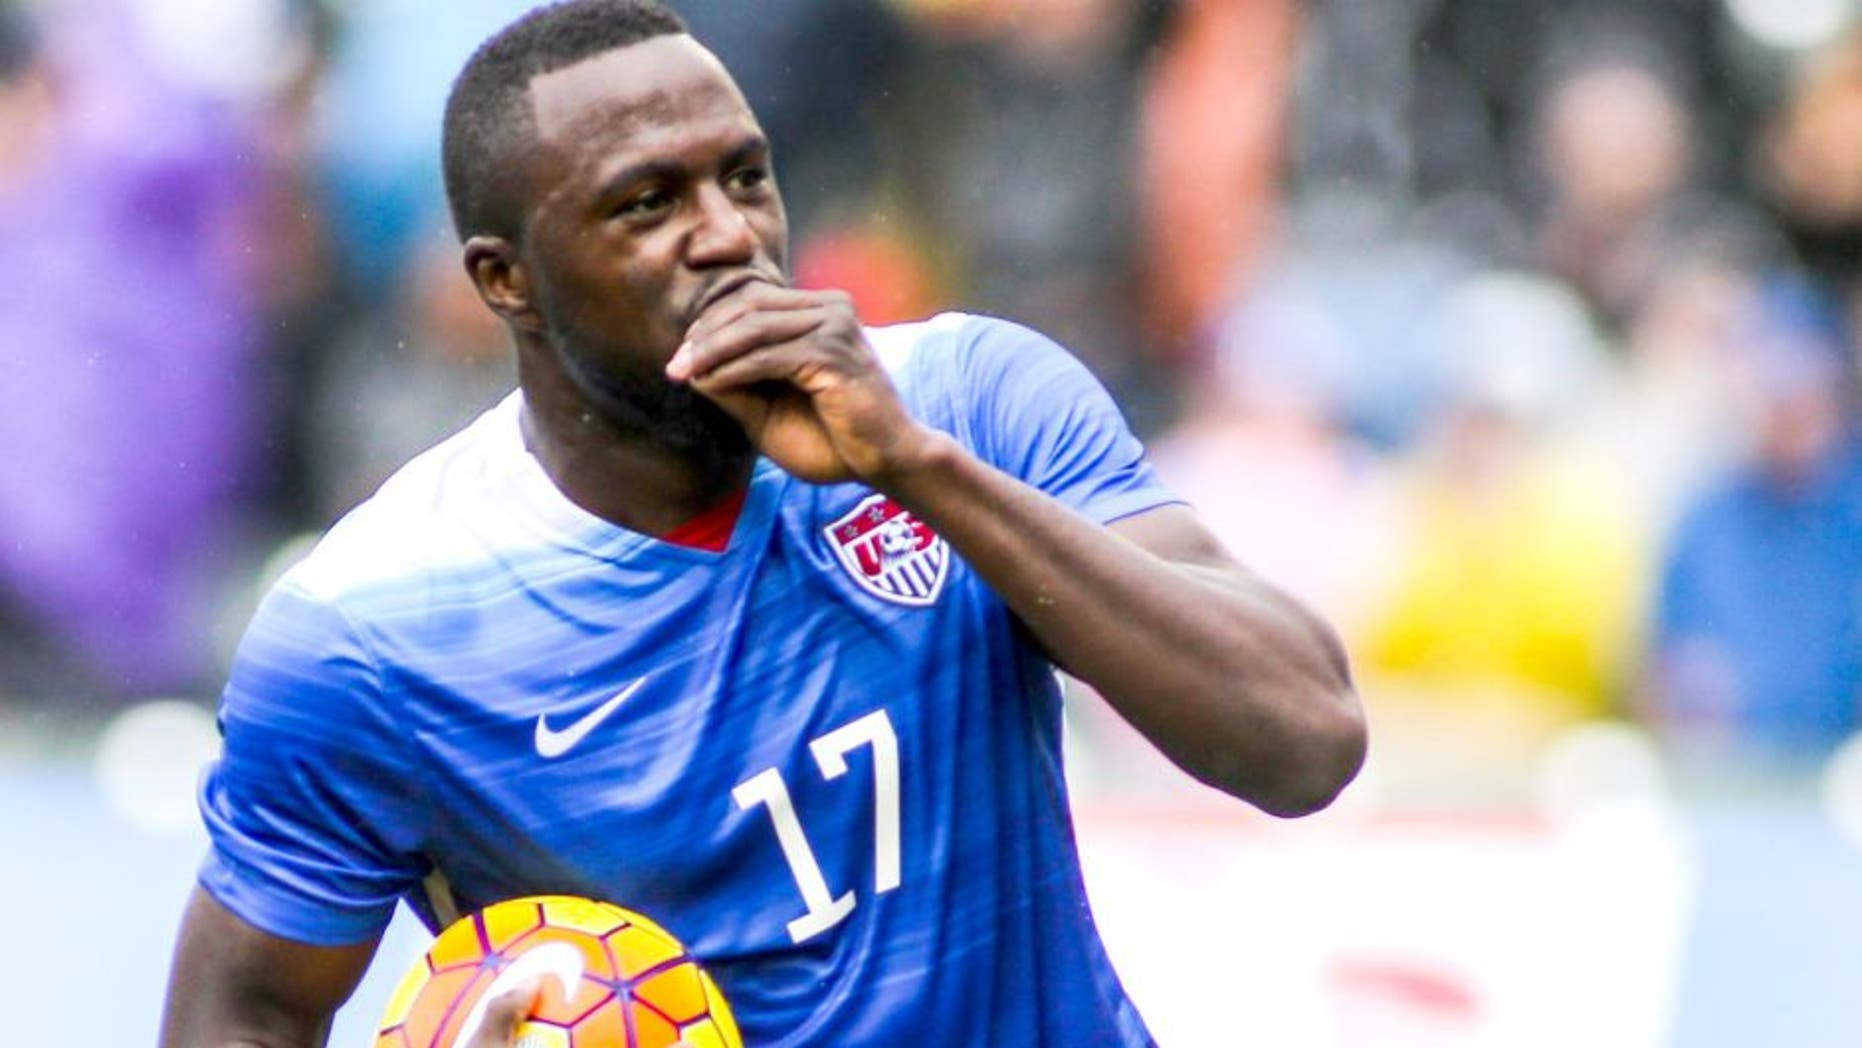 United States forward Jozy Altidore celebrates his goal against Iceland in the first half of a men's international friendly soccer game in Carson, Calif., Sunday, Jan., 31, 2016. (AP Photo/Ringo H.W. Chiu)